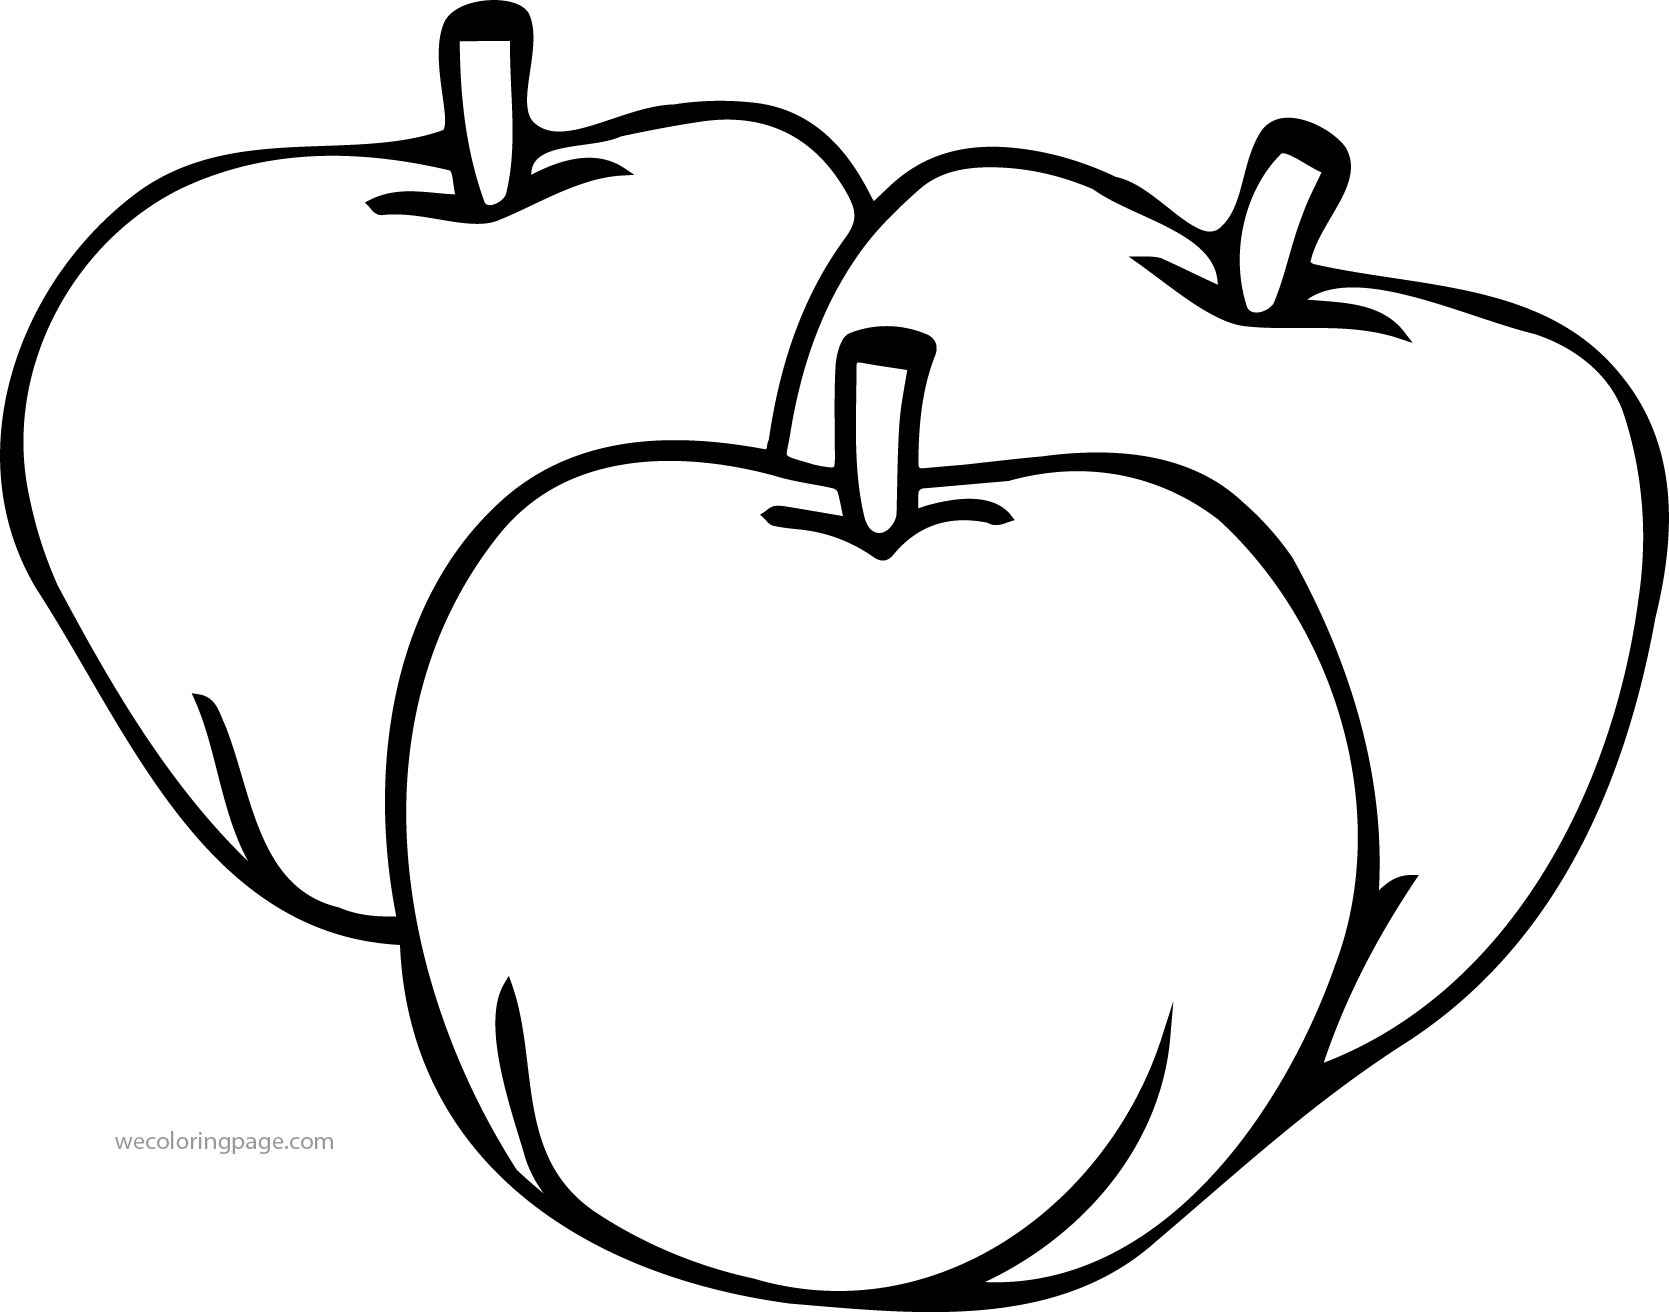 apple for coloring line art apple coloring page for kids apple coloring for apple coloring